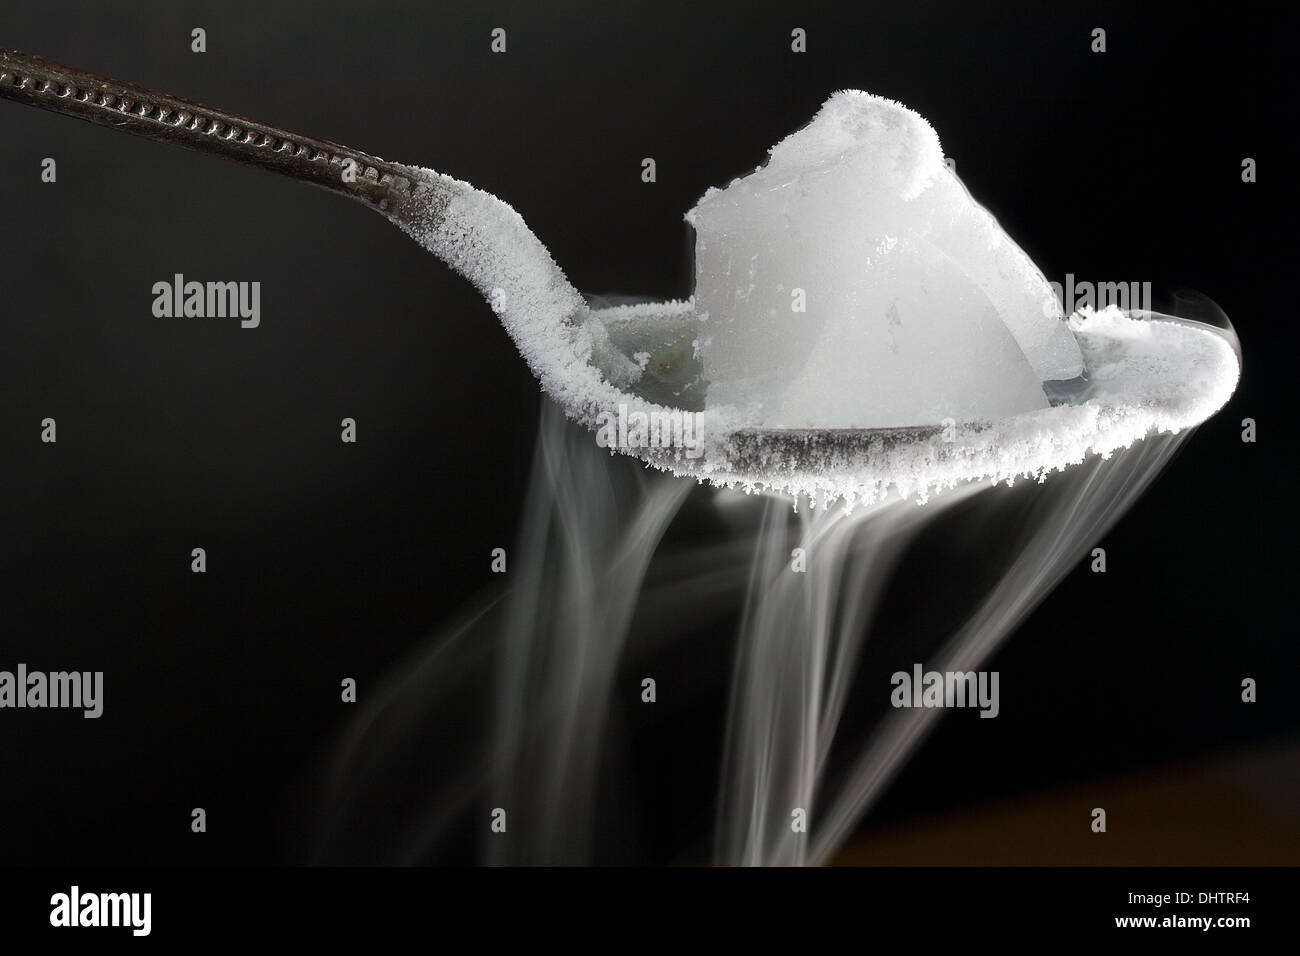 Chunk of Dry Ice (Frozen Carbon Dioxide) on Metal Spoon. Also Shows Water Ice Crystals Forming on the Spoon - Stock Image